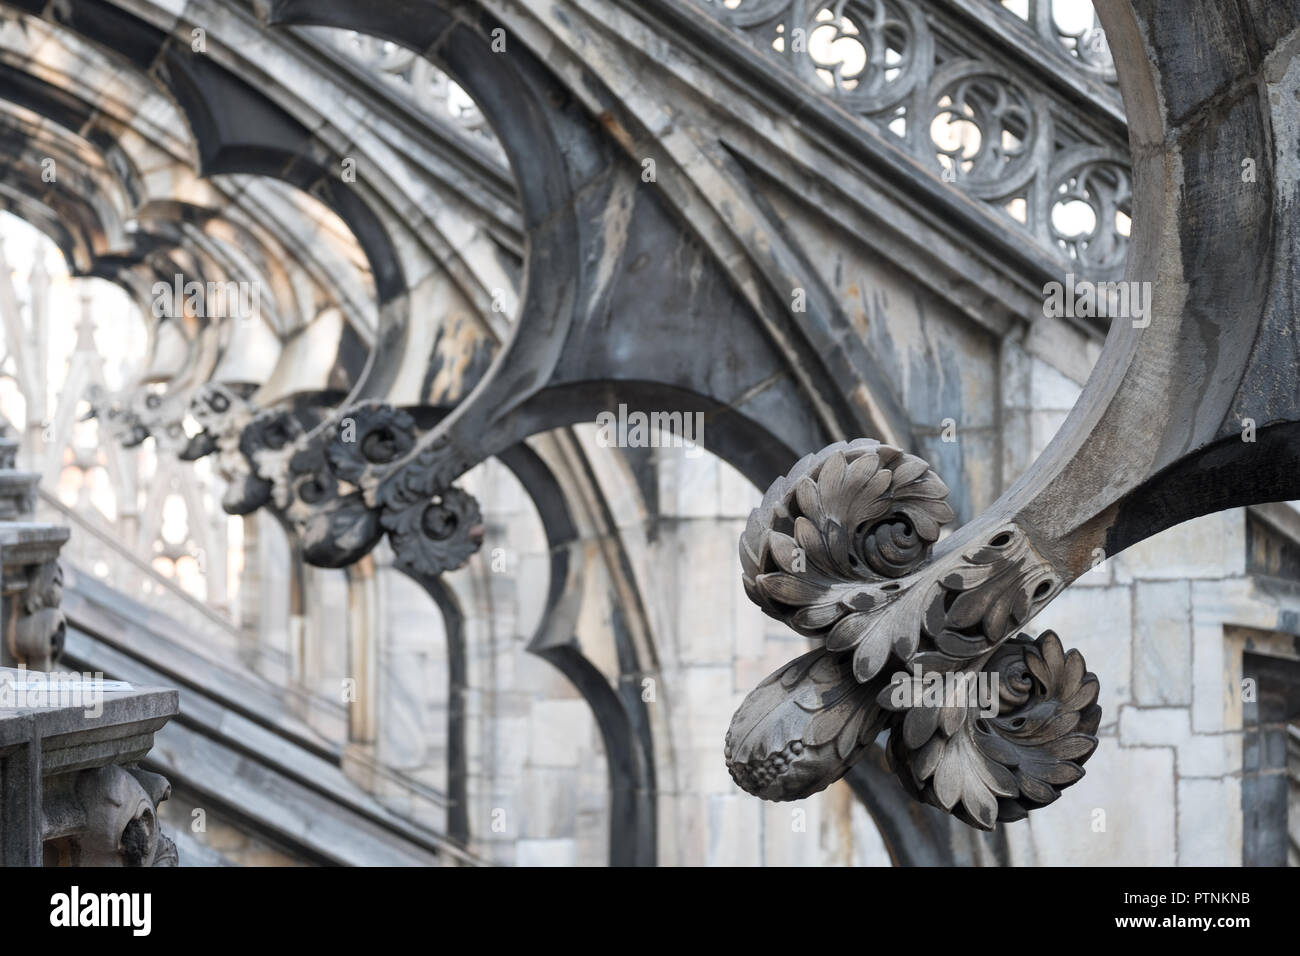 Milan, Italy. Photo taken high up in the terraces of Milan Cathedral / Duomo di Milano, showing the gothic architecture in detail. Stock Photo